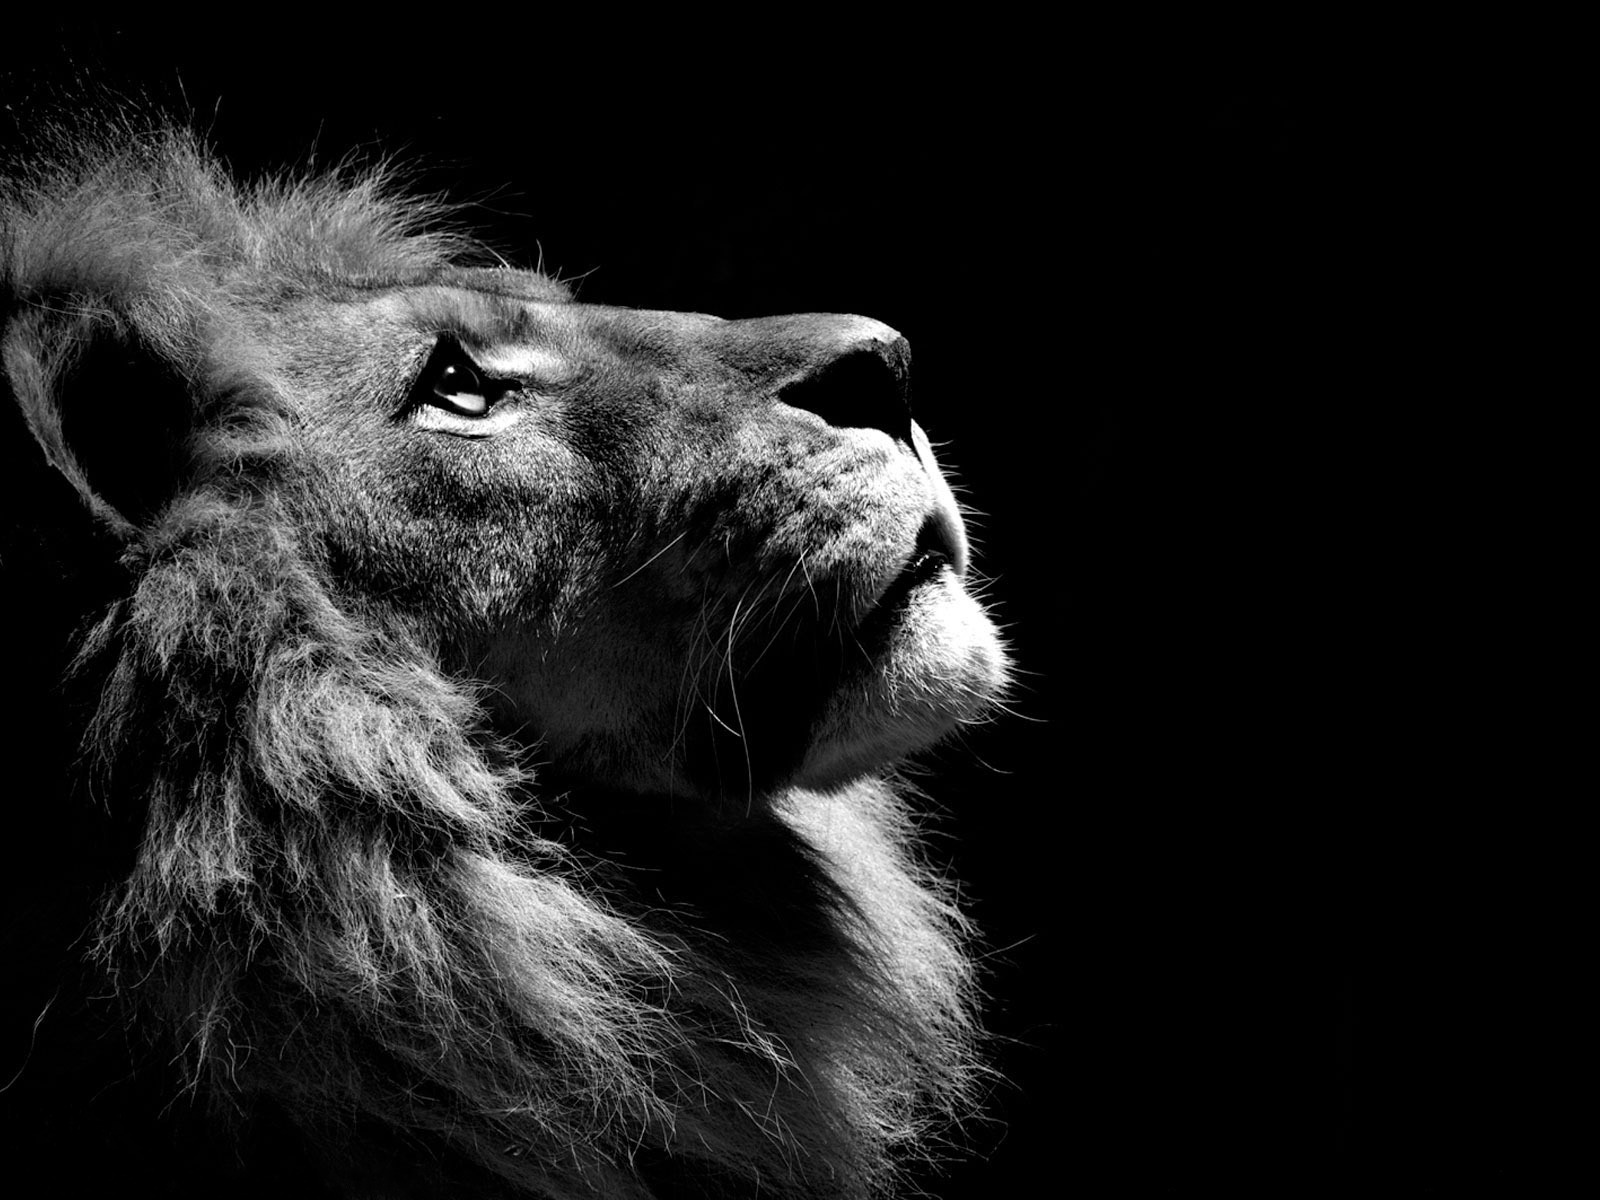 high resolution black and white animal photographs | black and